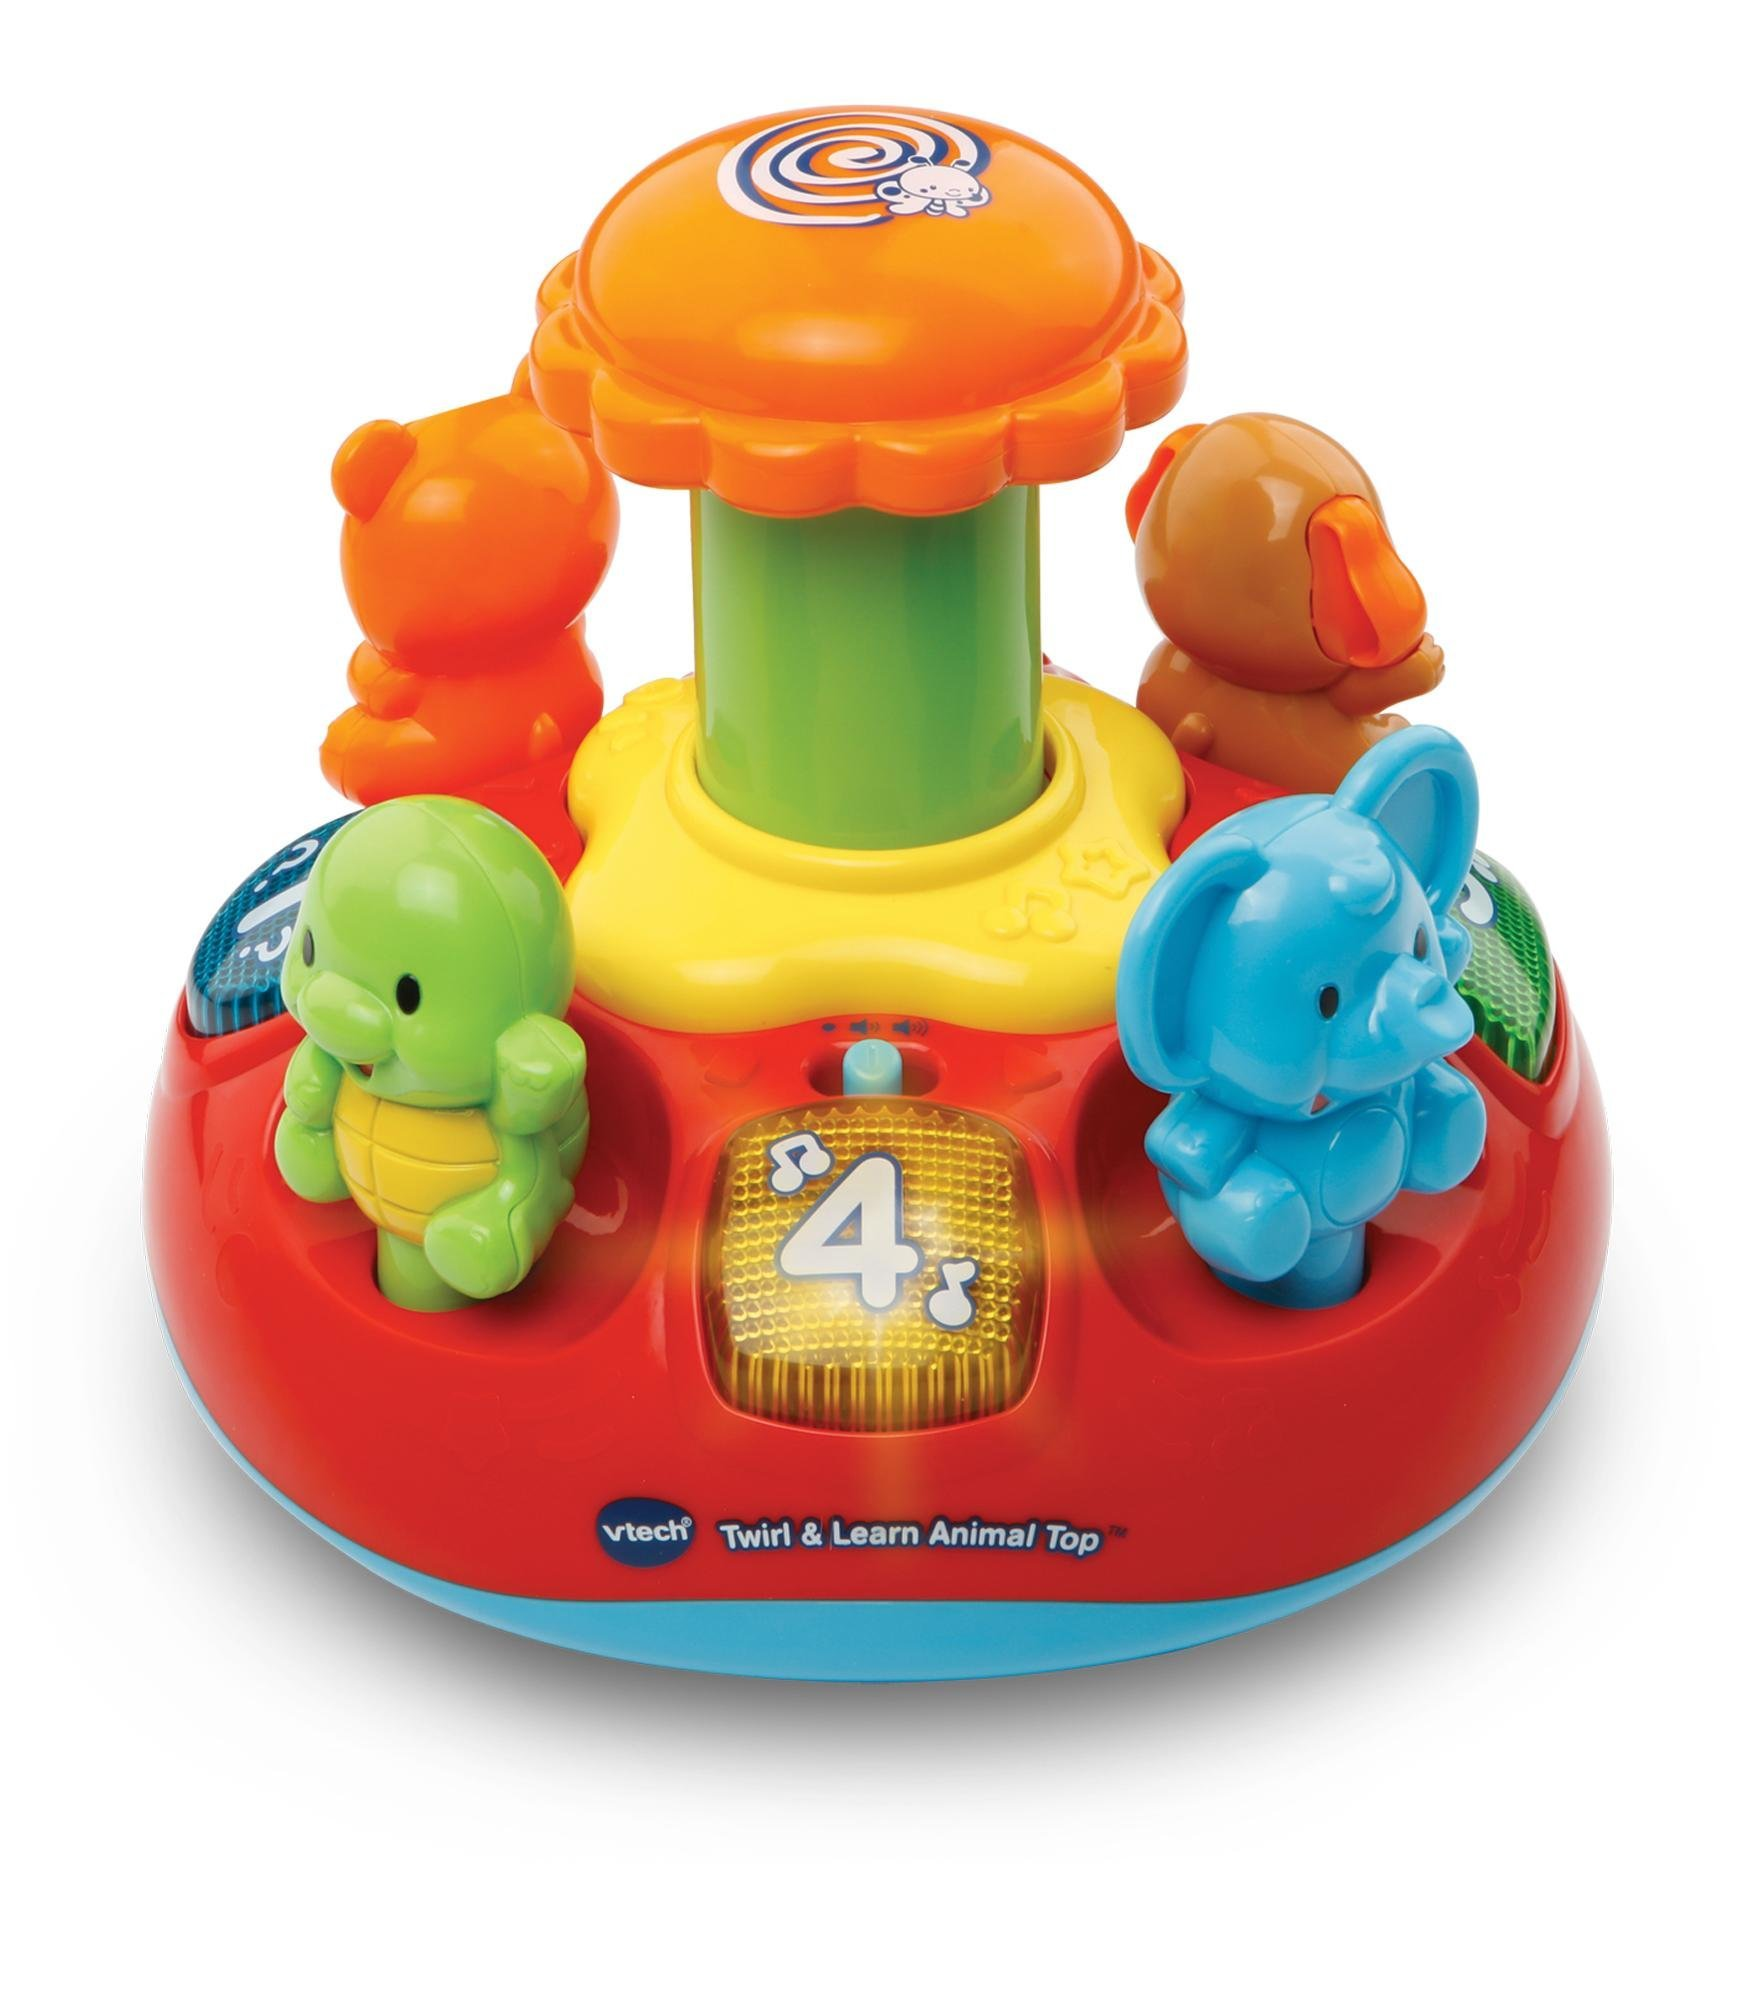 The Best Of Vtech Baby toys Pictures